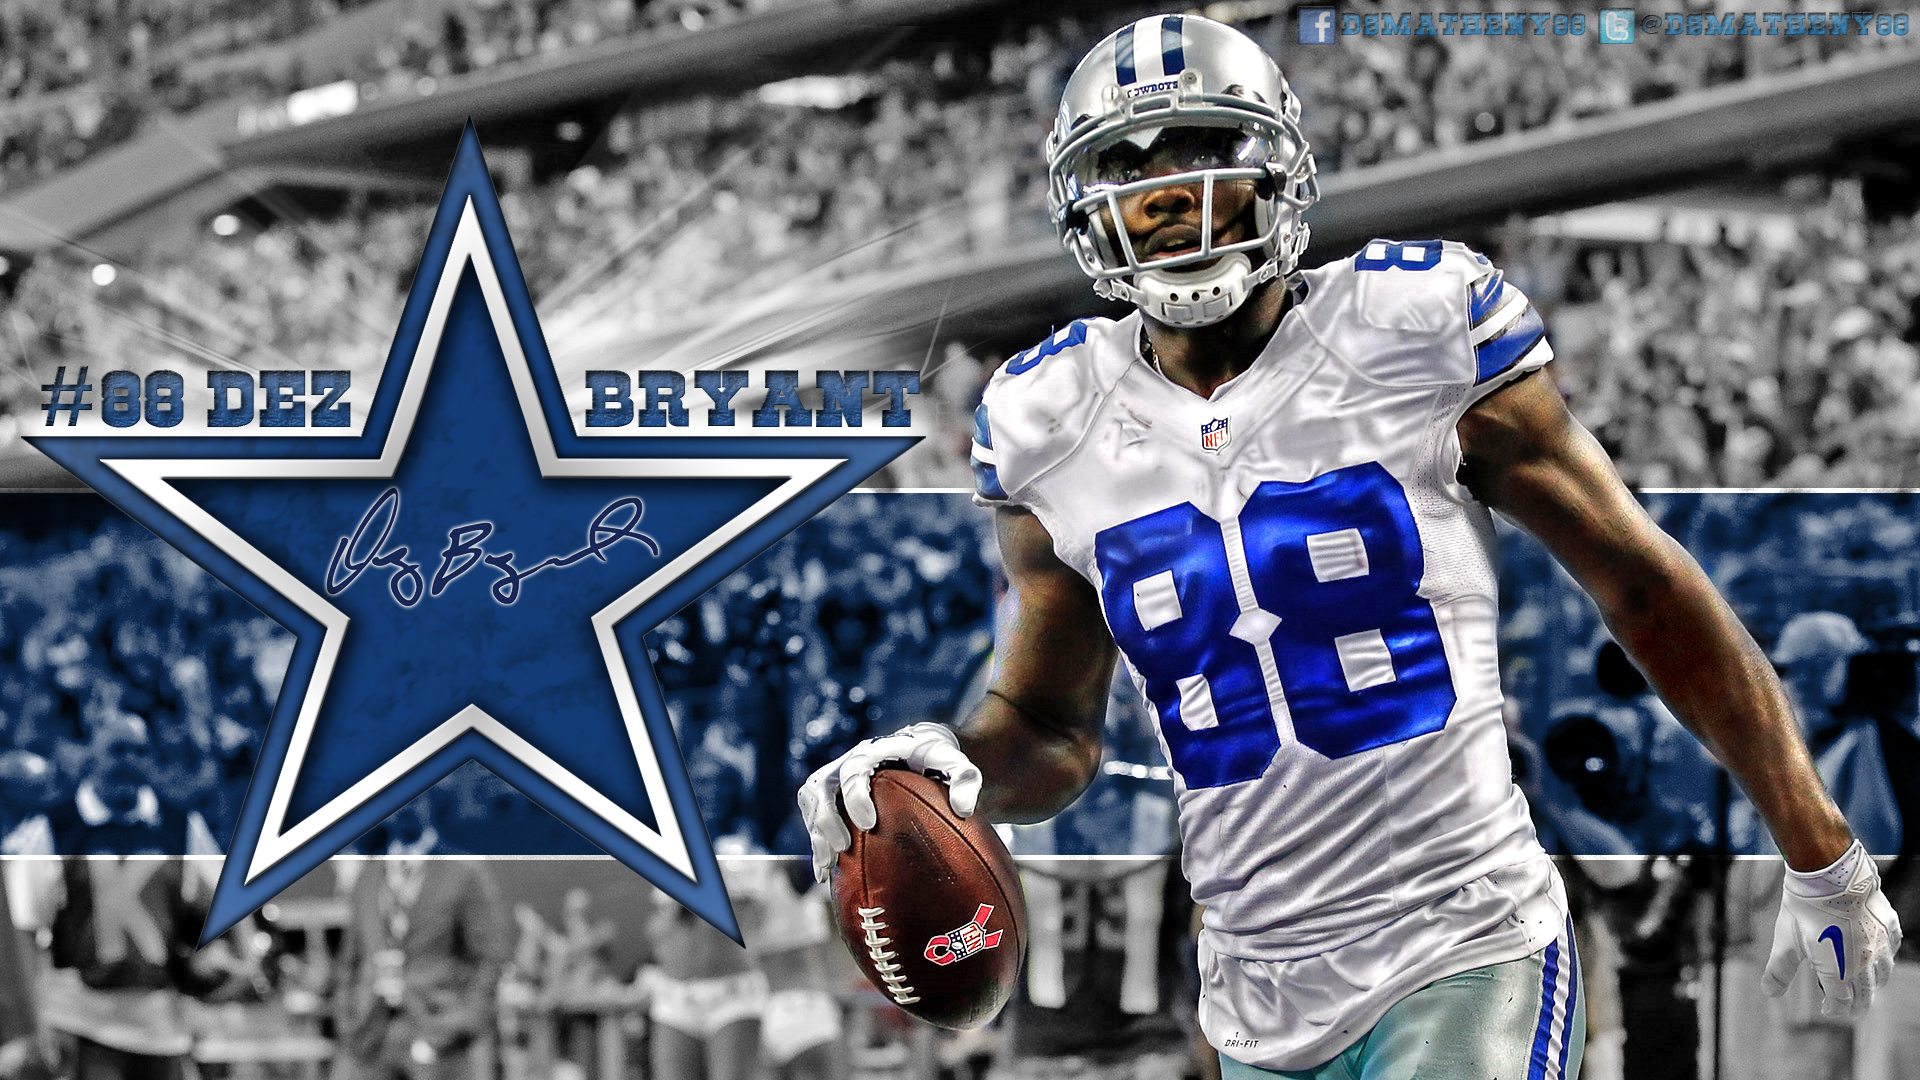 Dez Bryant Wallpapers High Quality   Download Free